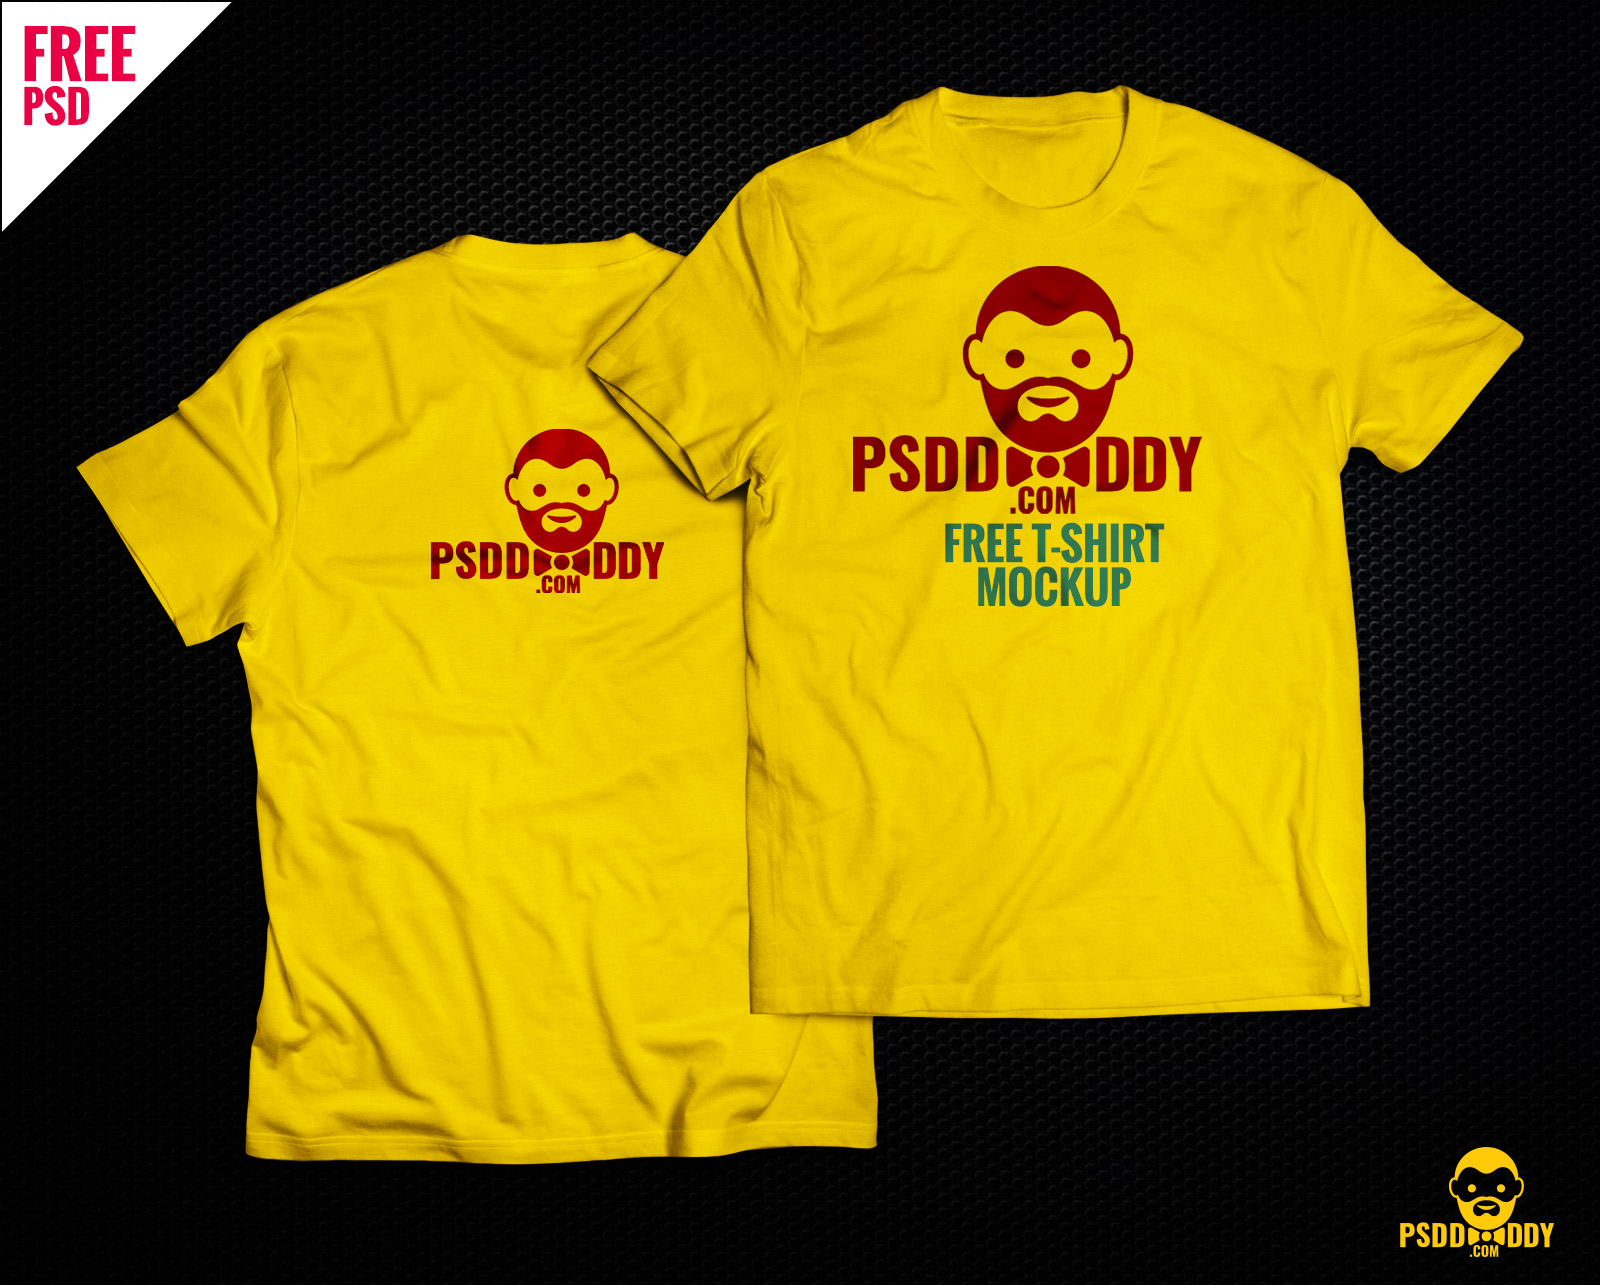 Download T Shirt Mock Up Free Psd Psddaddy Com